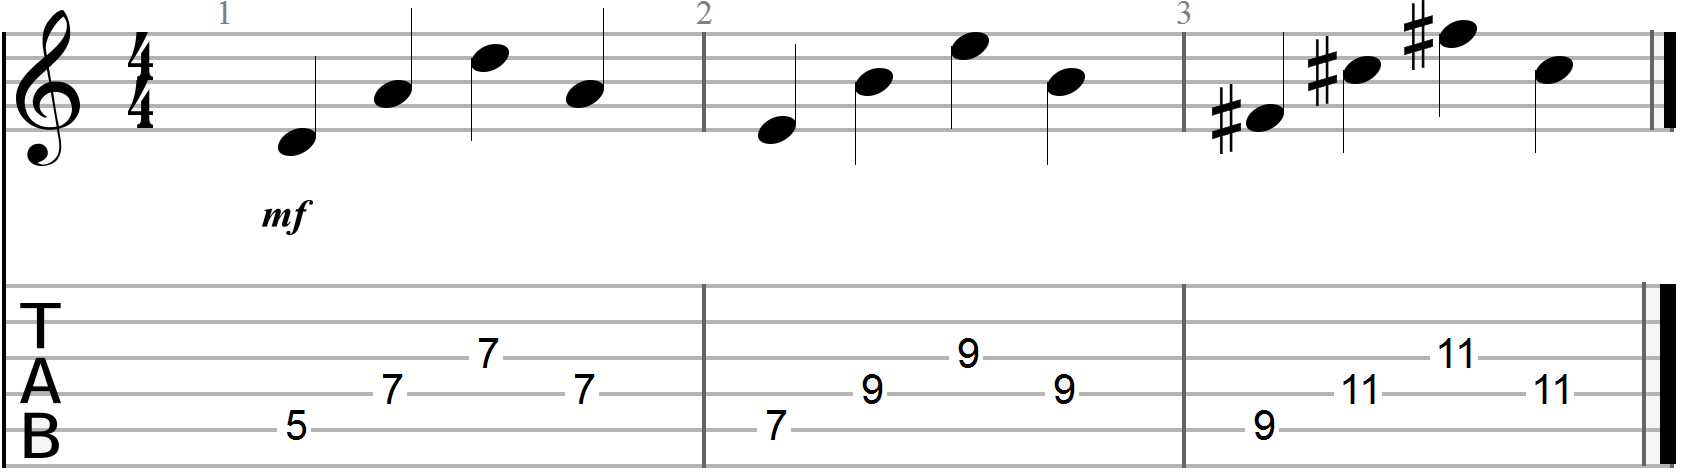 Dsus2 guitar chord images guitar chords examples dsus2 guitar chord choice image guitar chords examples dsus2 guitar chord images guitar chords examples the hexwebz Image collections